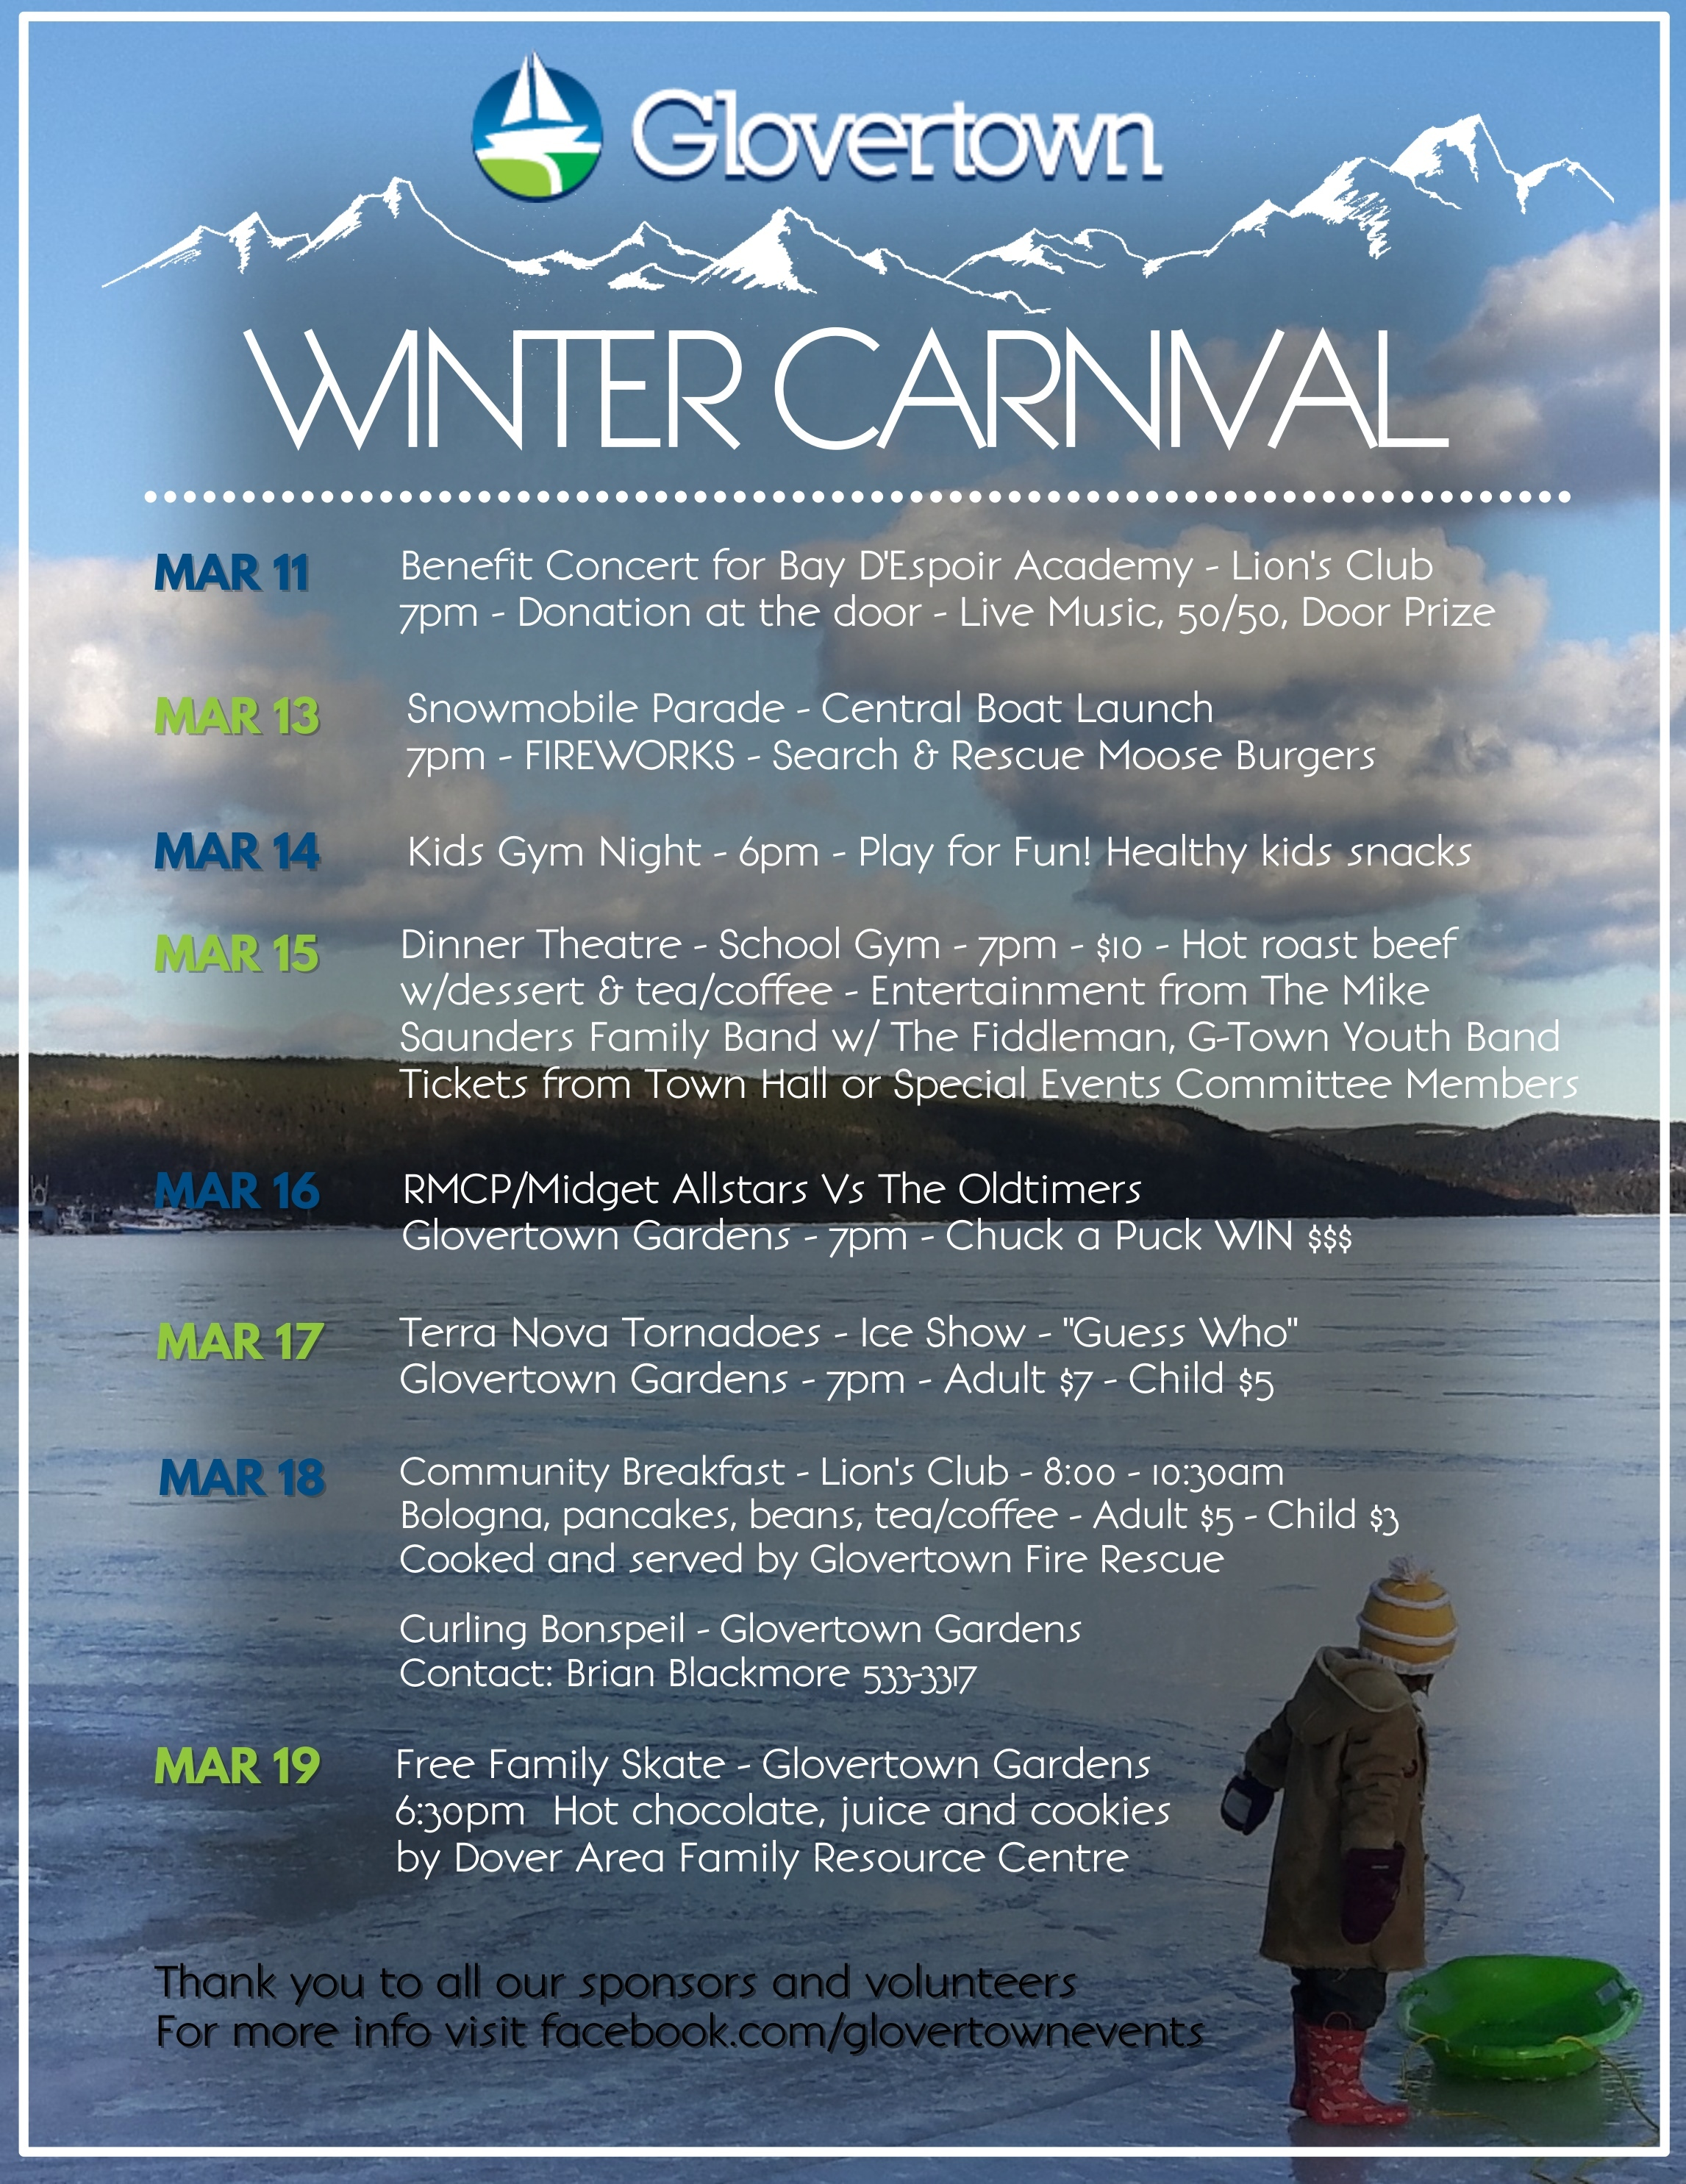 Winter Carnvial Schedule